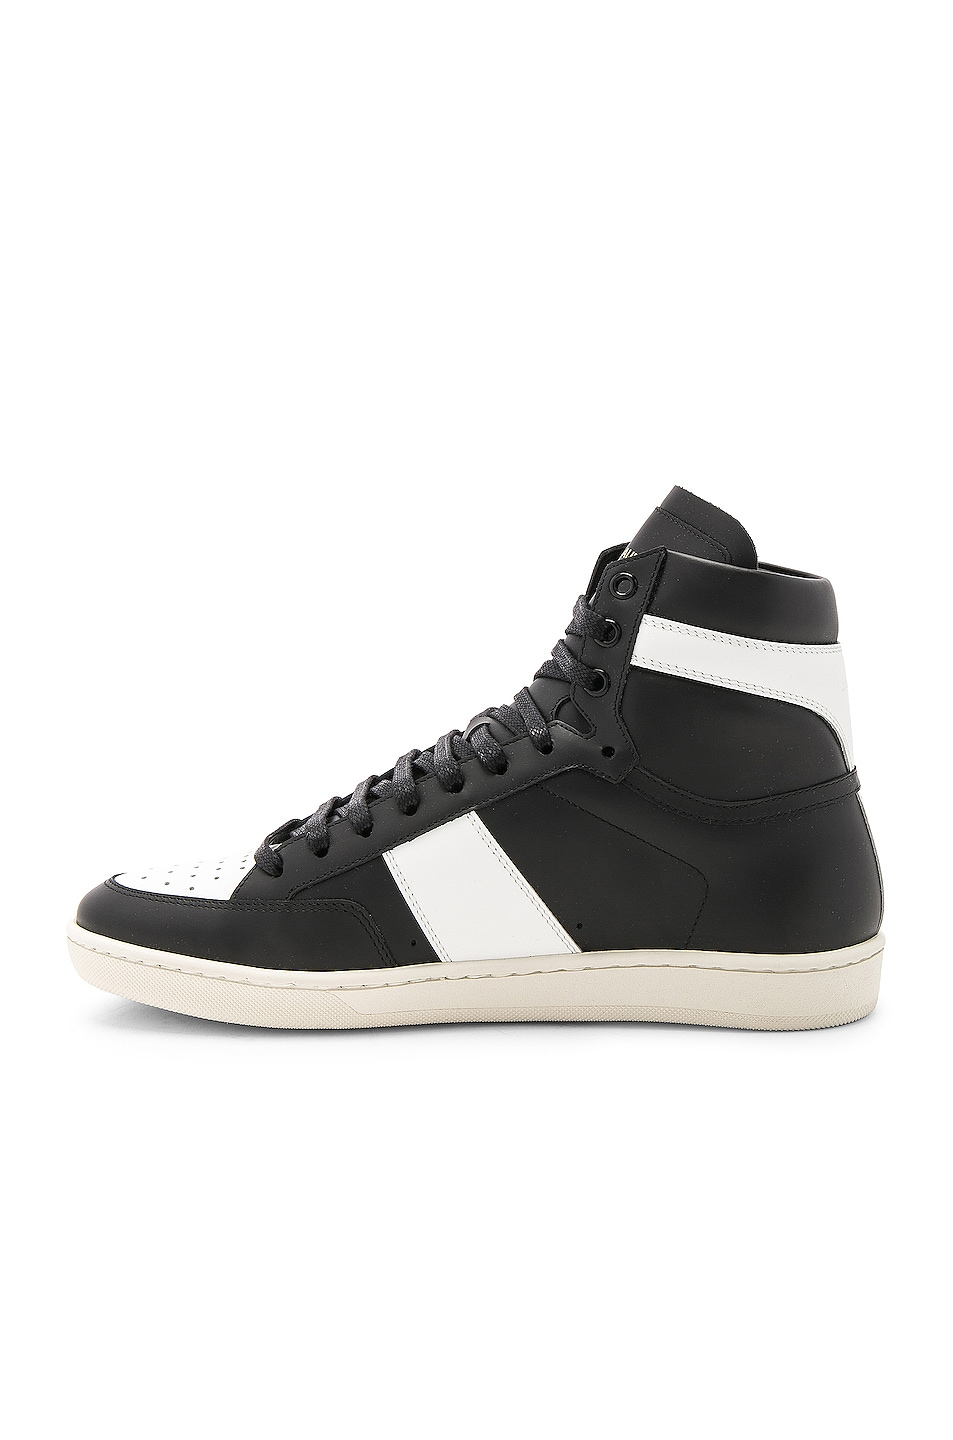 Image 5 of Saint Laurent Signature Court Classic SL/10H Leather High Top Sneakers in Black & White